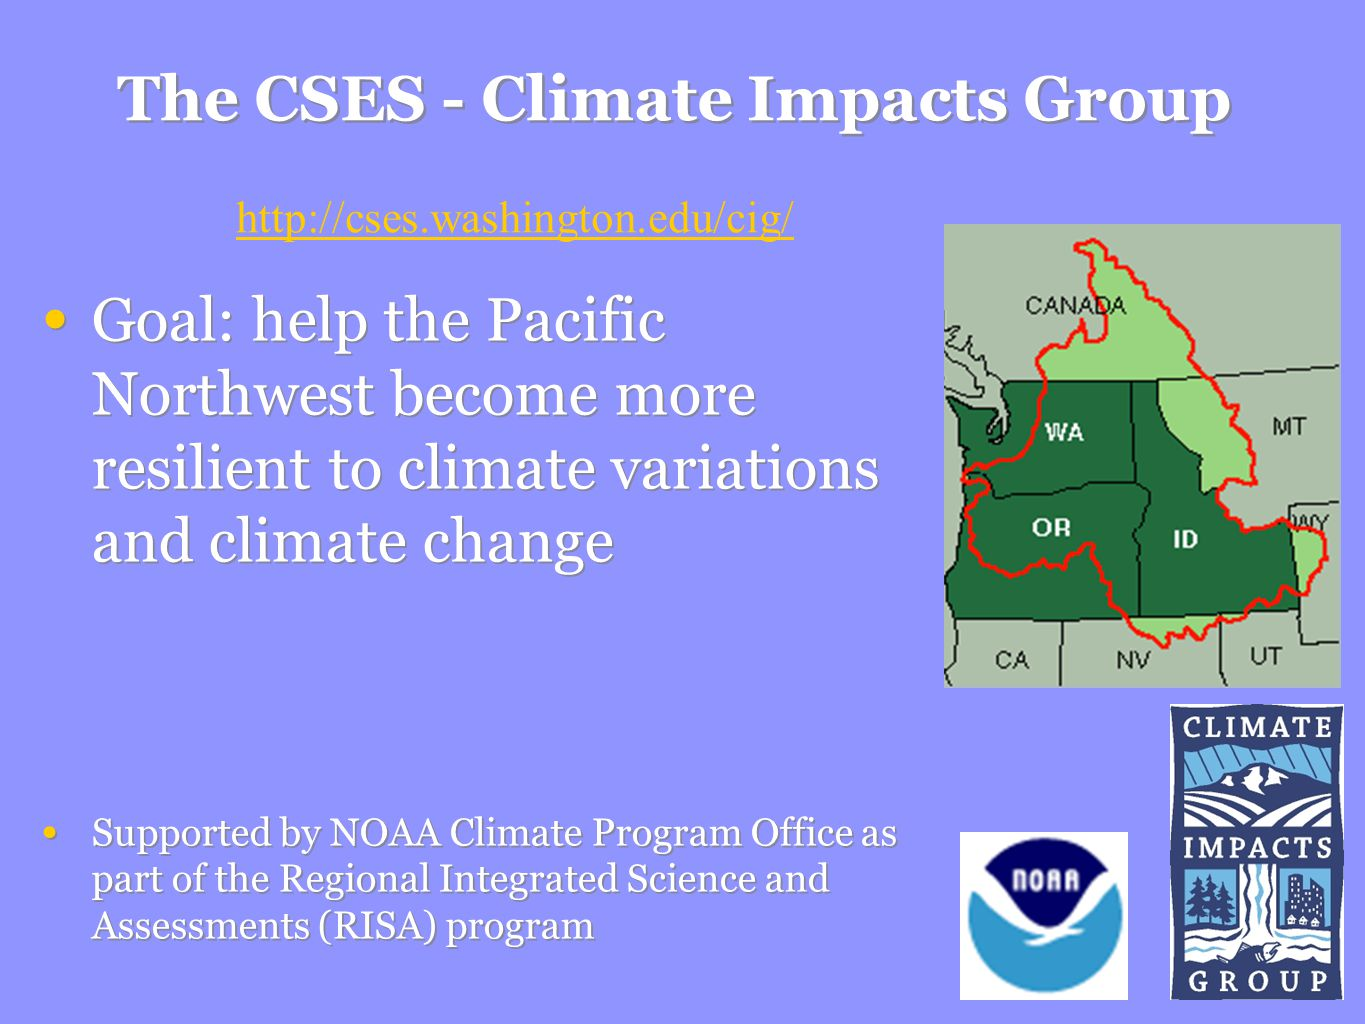 The CSES - Climate Impacts Group Goal: help the Pacific Northwest become more resilient to climate variations and climate change Supported by NOAA Climate Program Office as part of the Regional Integrated Science and Assessments (RISA) program Goal: help the Pacific Northwest become more resilient to climate variations and climate change Supported by NOAA Climate Program Office as part of the Regional Integrated Science and Assessments (RISA) program